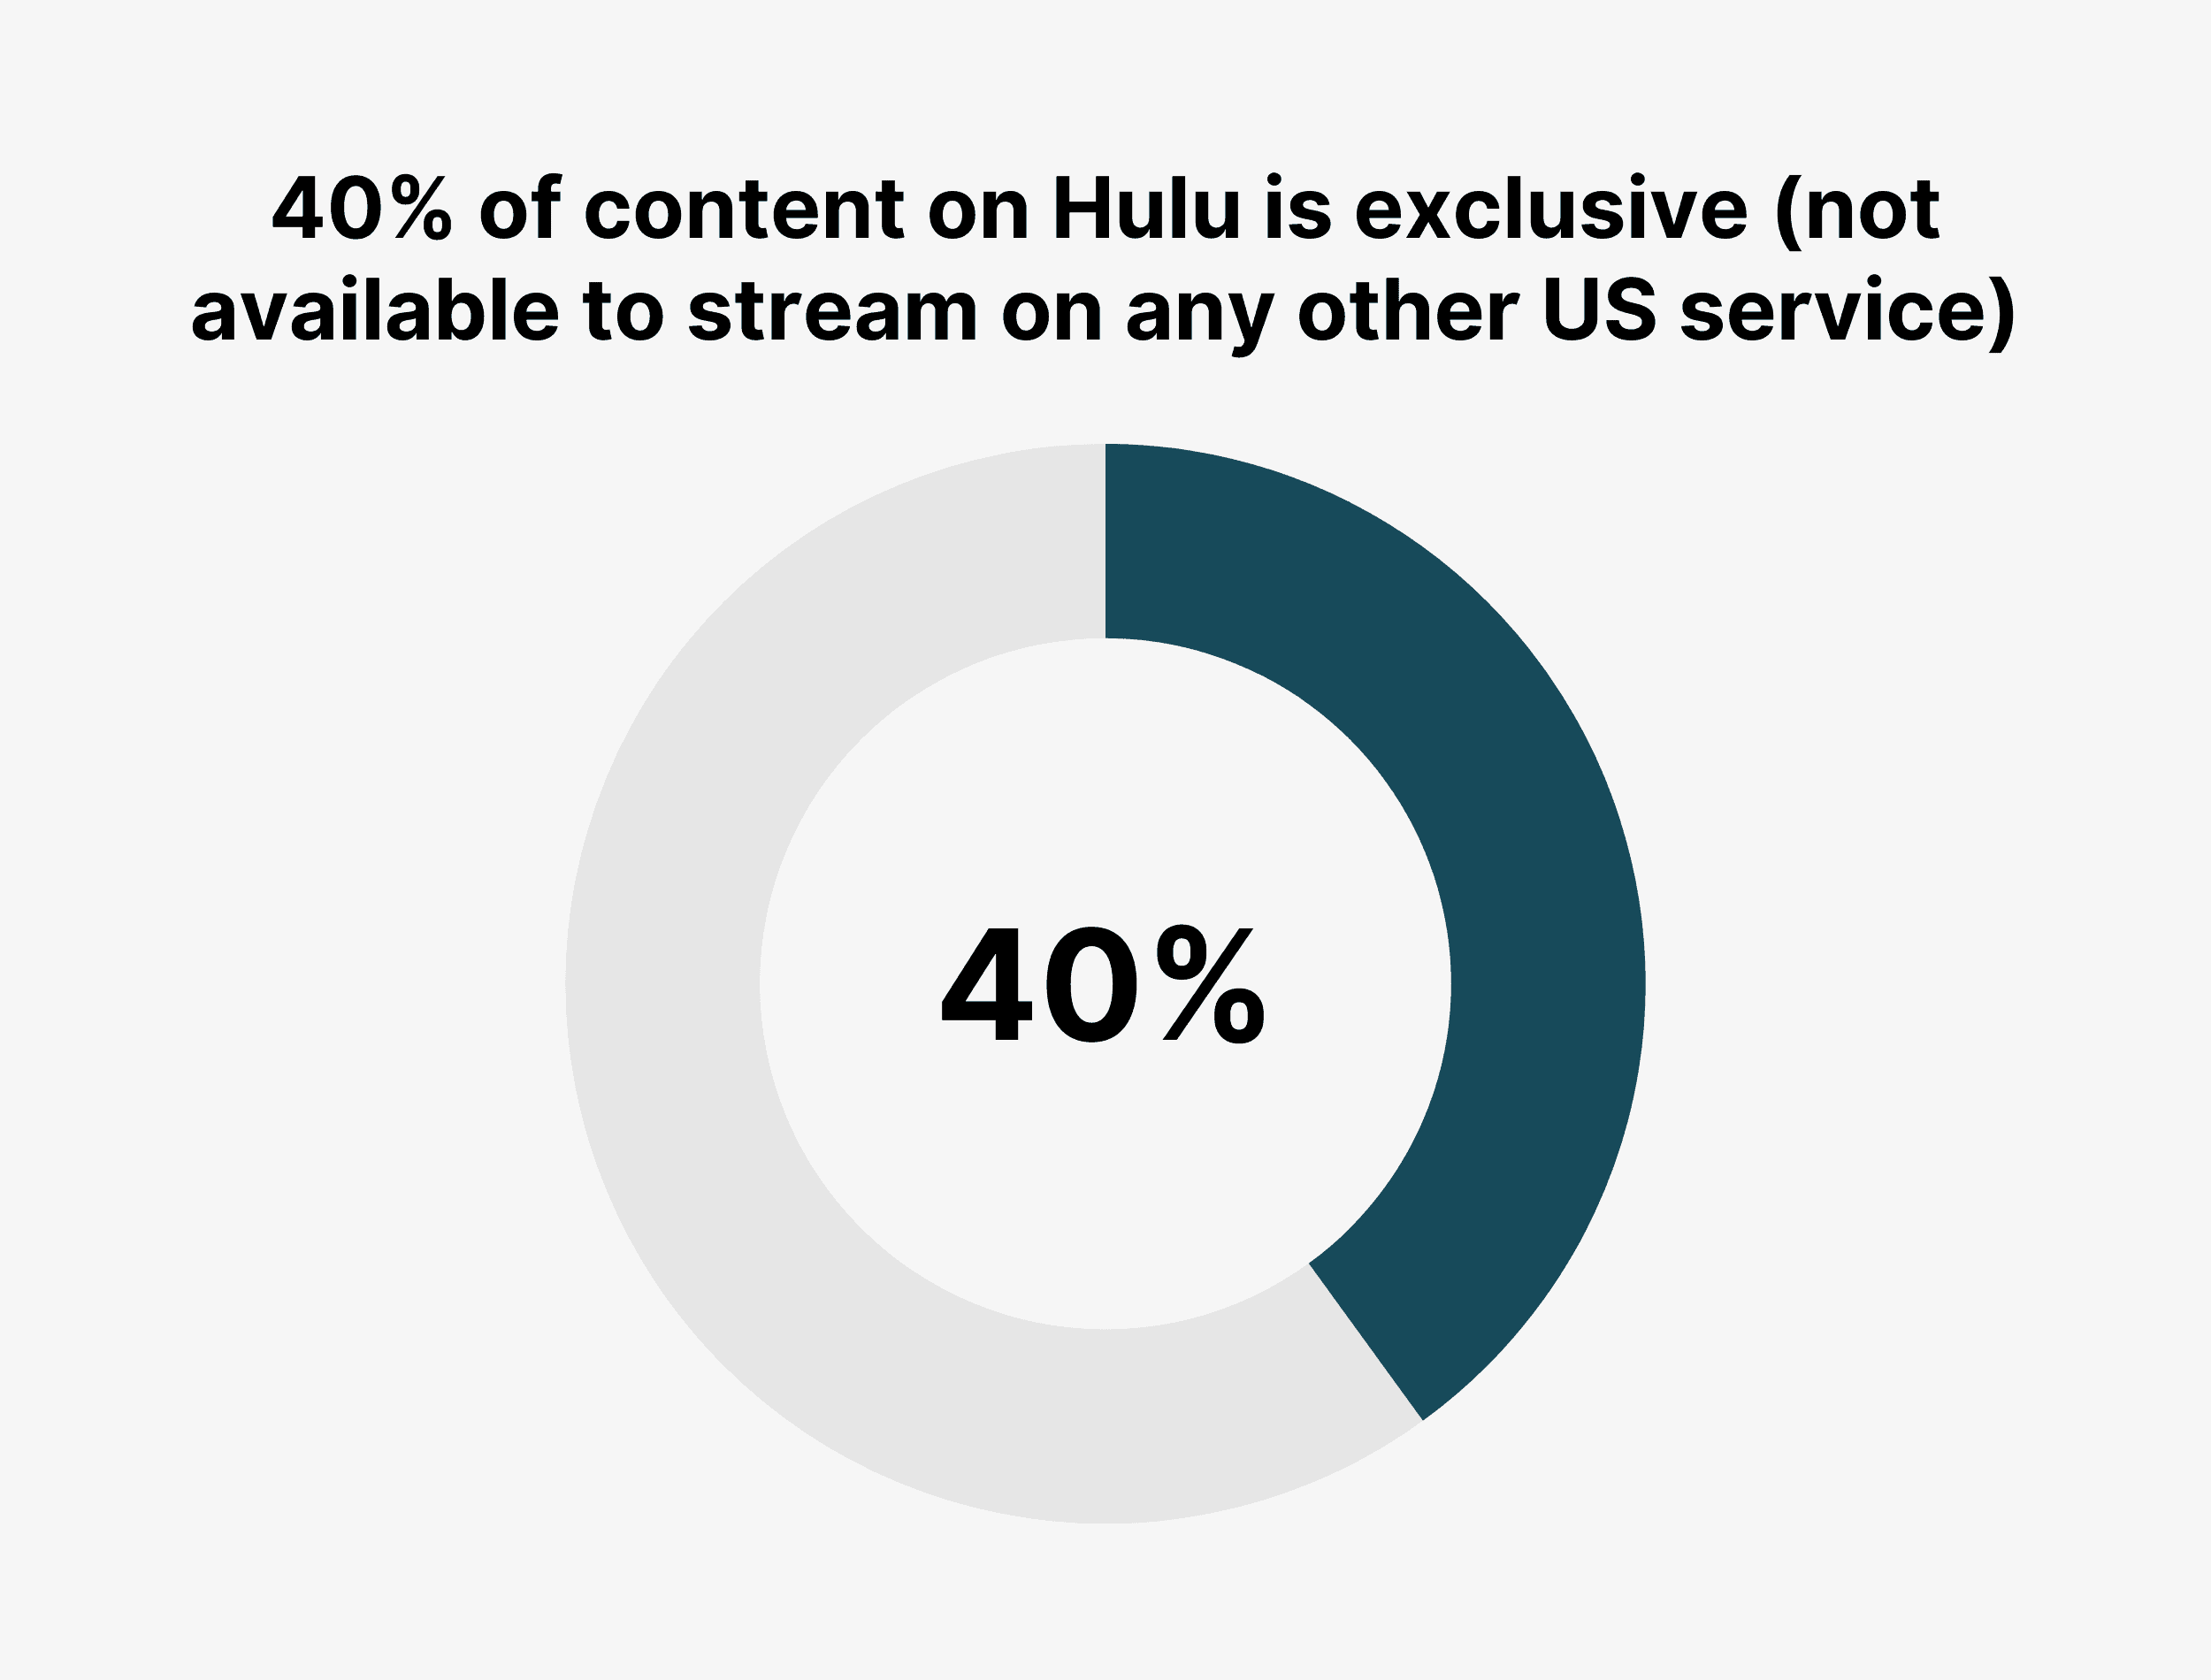 40% of content on Hulu is exclusive (not available to stream on any other US service)